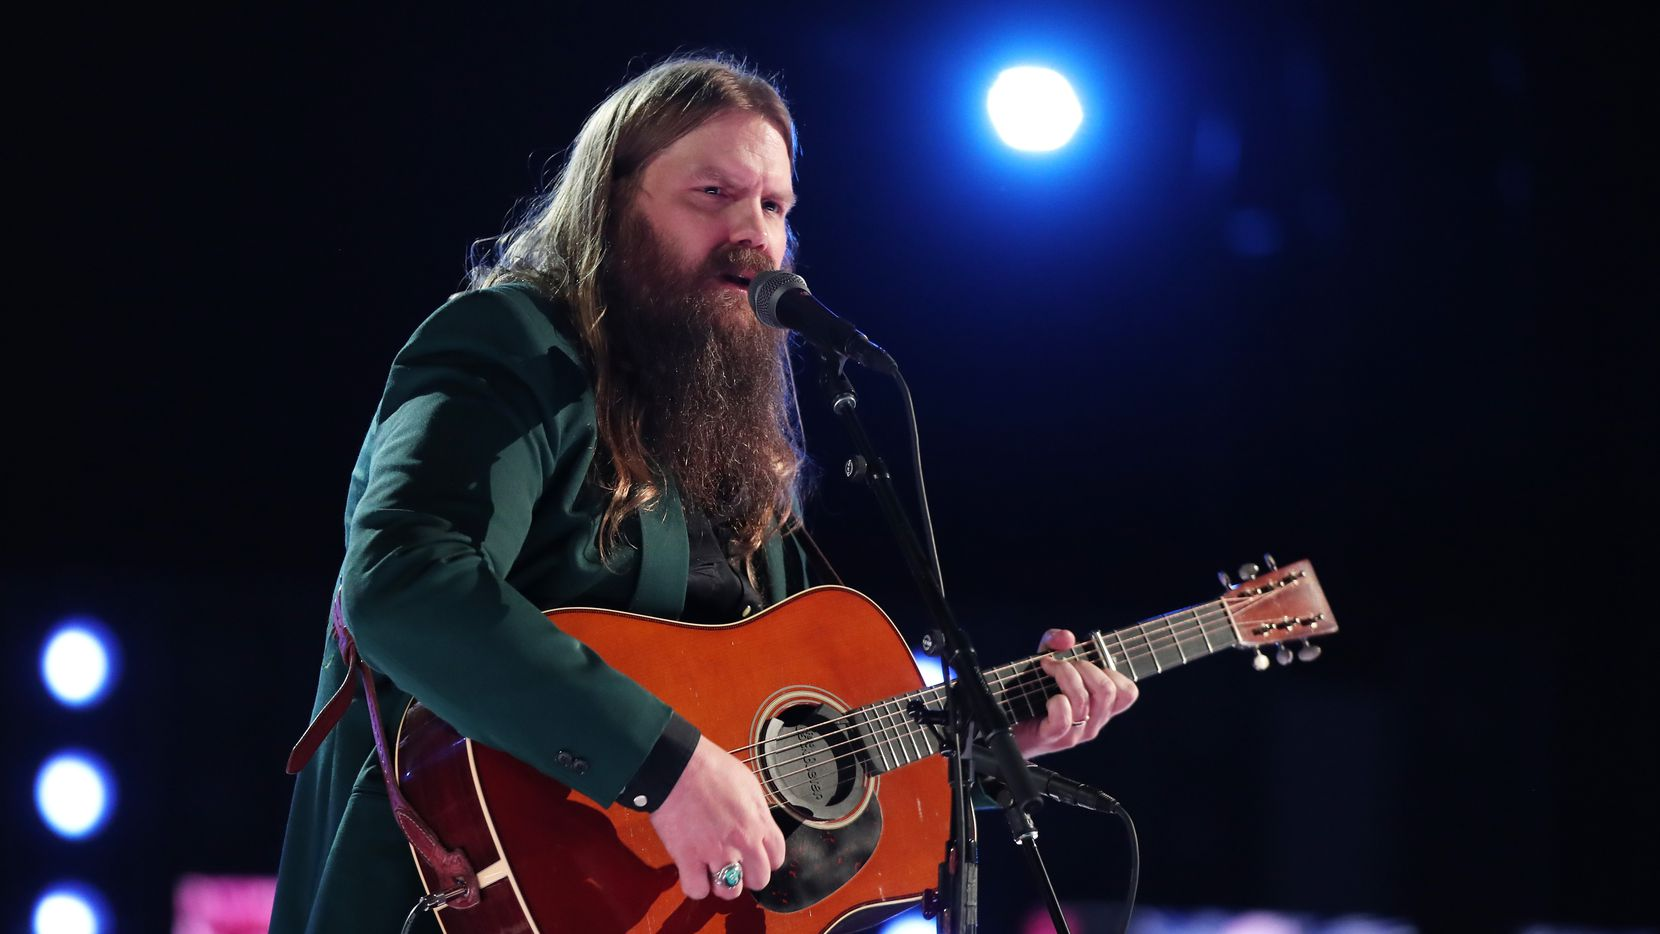 Recording artist Chris Stapleton performs onstage during the 60th Annual GRAMMY Awards at Madison Square Garden on Jan. 28, 2018 in New York City. Stapleton was scheduled to perform at Globe Life Field in Arlington in March, but the show was postponed to November.